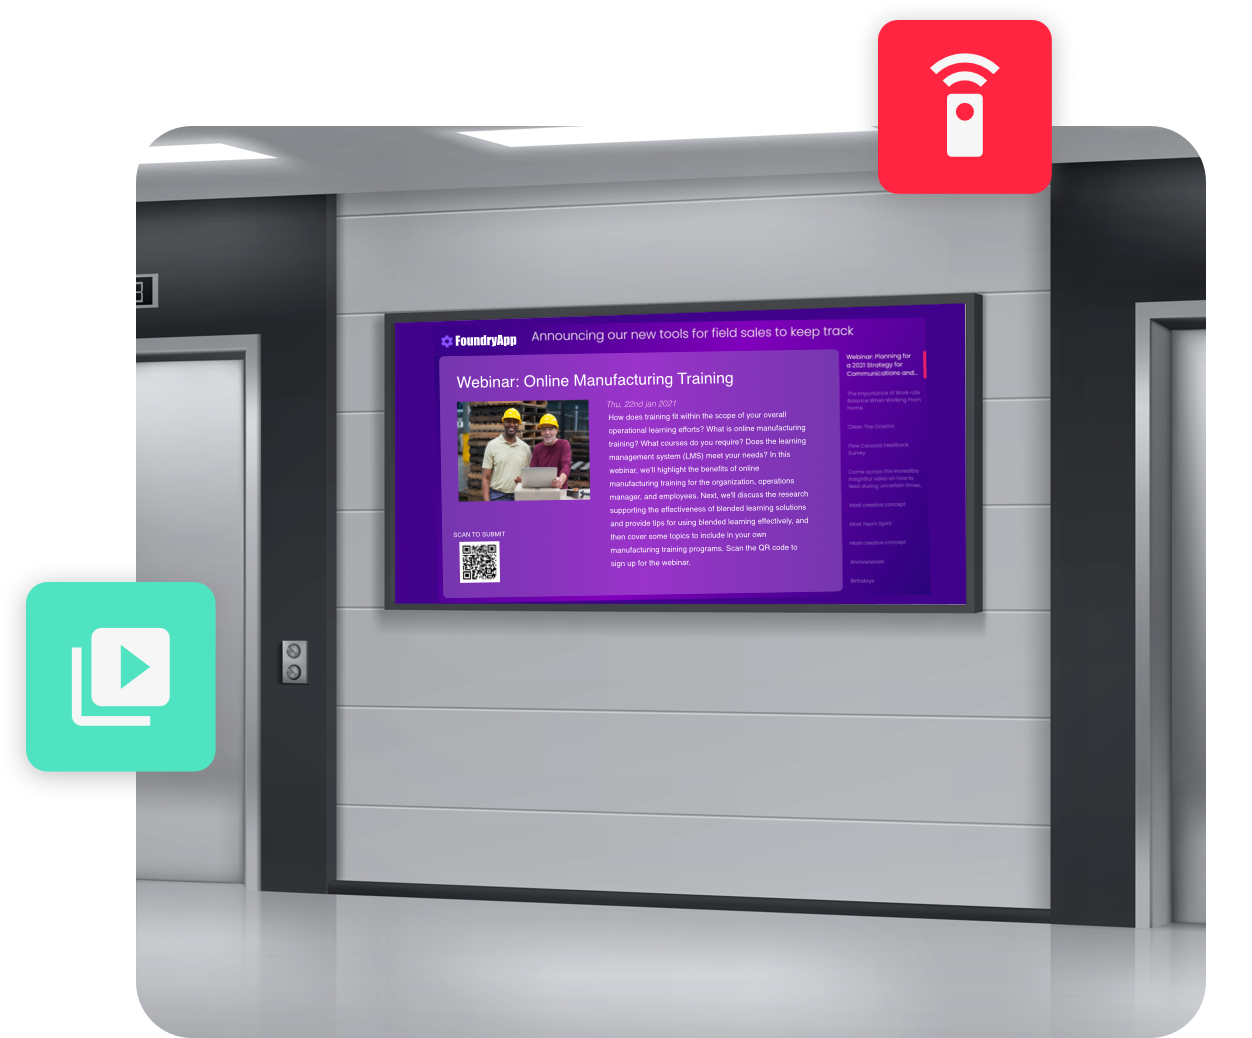 HubEngage Software - Deploy a stunning digital display solution that streams the latest employee communications content to your displays in a multitude of settings. Your employees can scan QR codes to unlock apps that give a more personalized experience on the go!